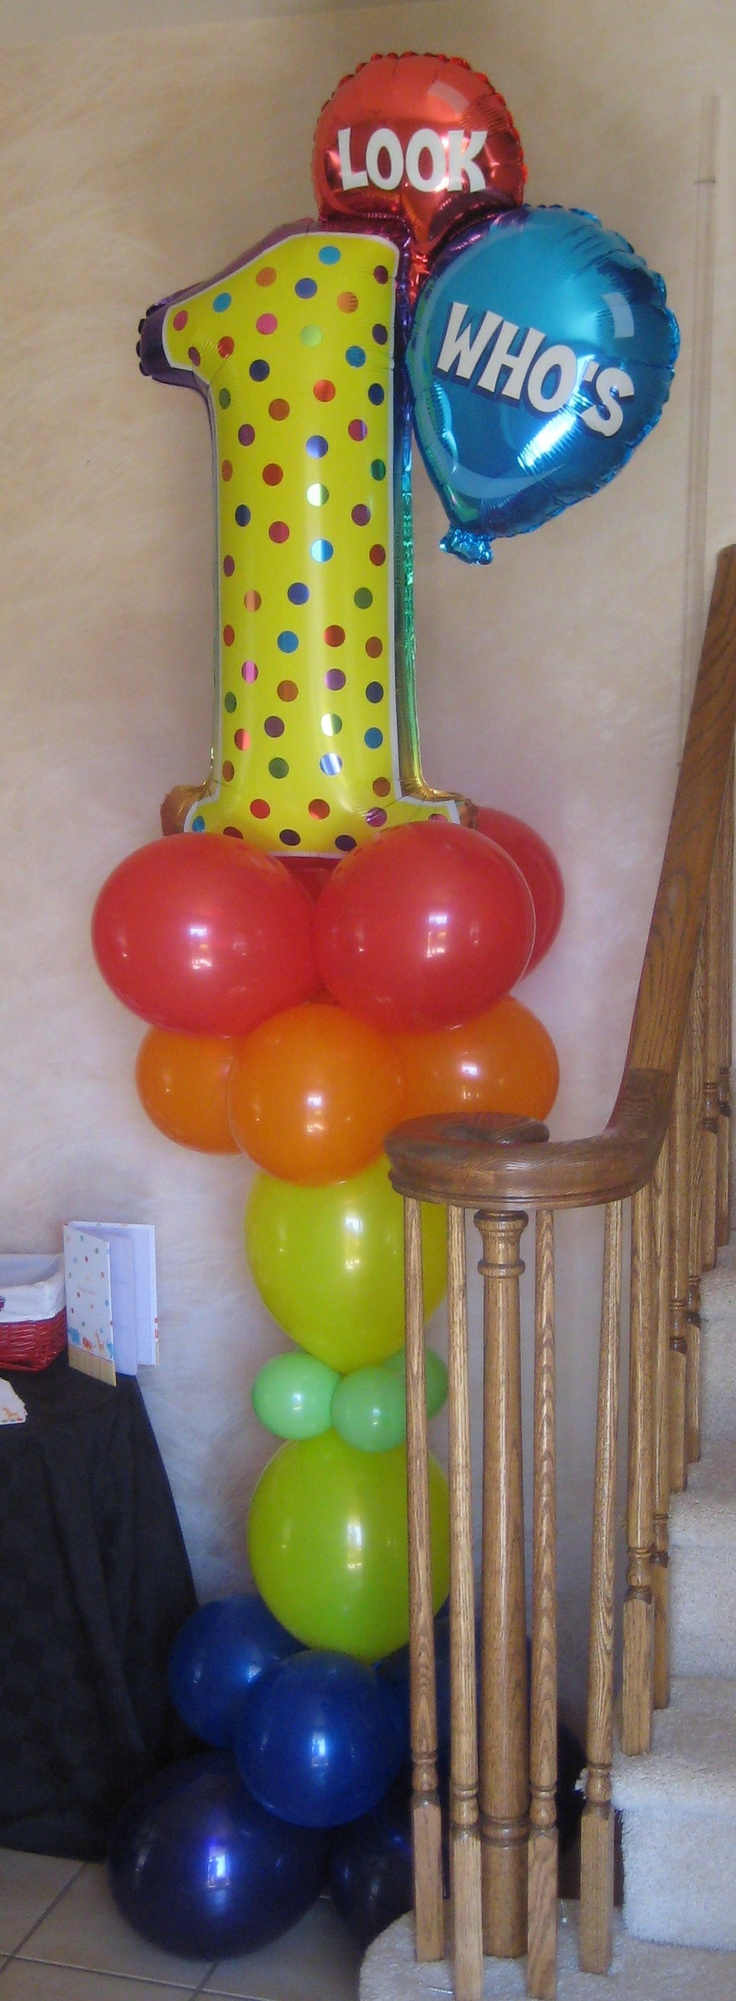 23 best First Birthday & Kids Party themes & ideas images on ...